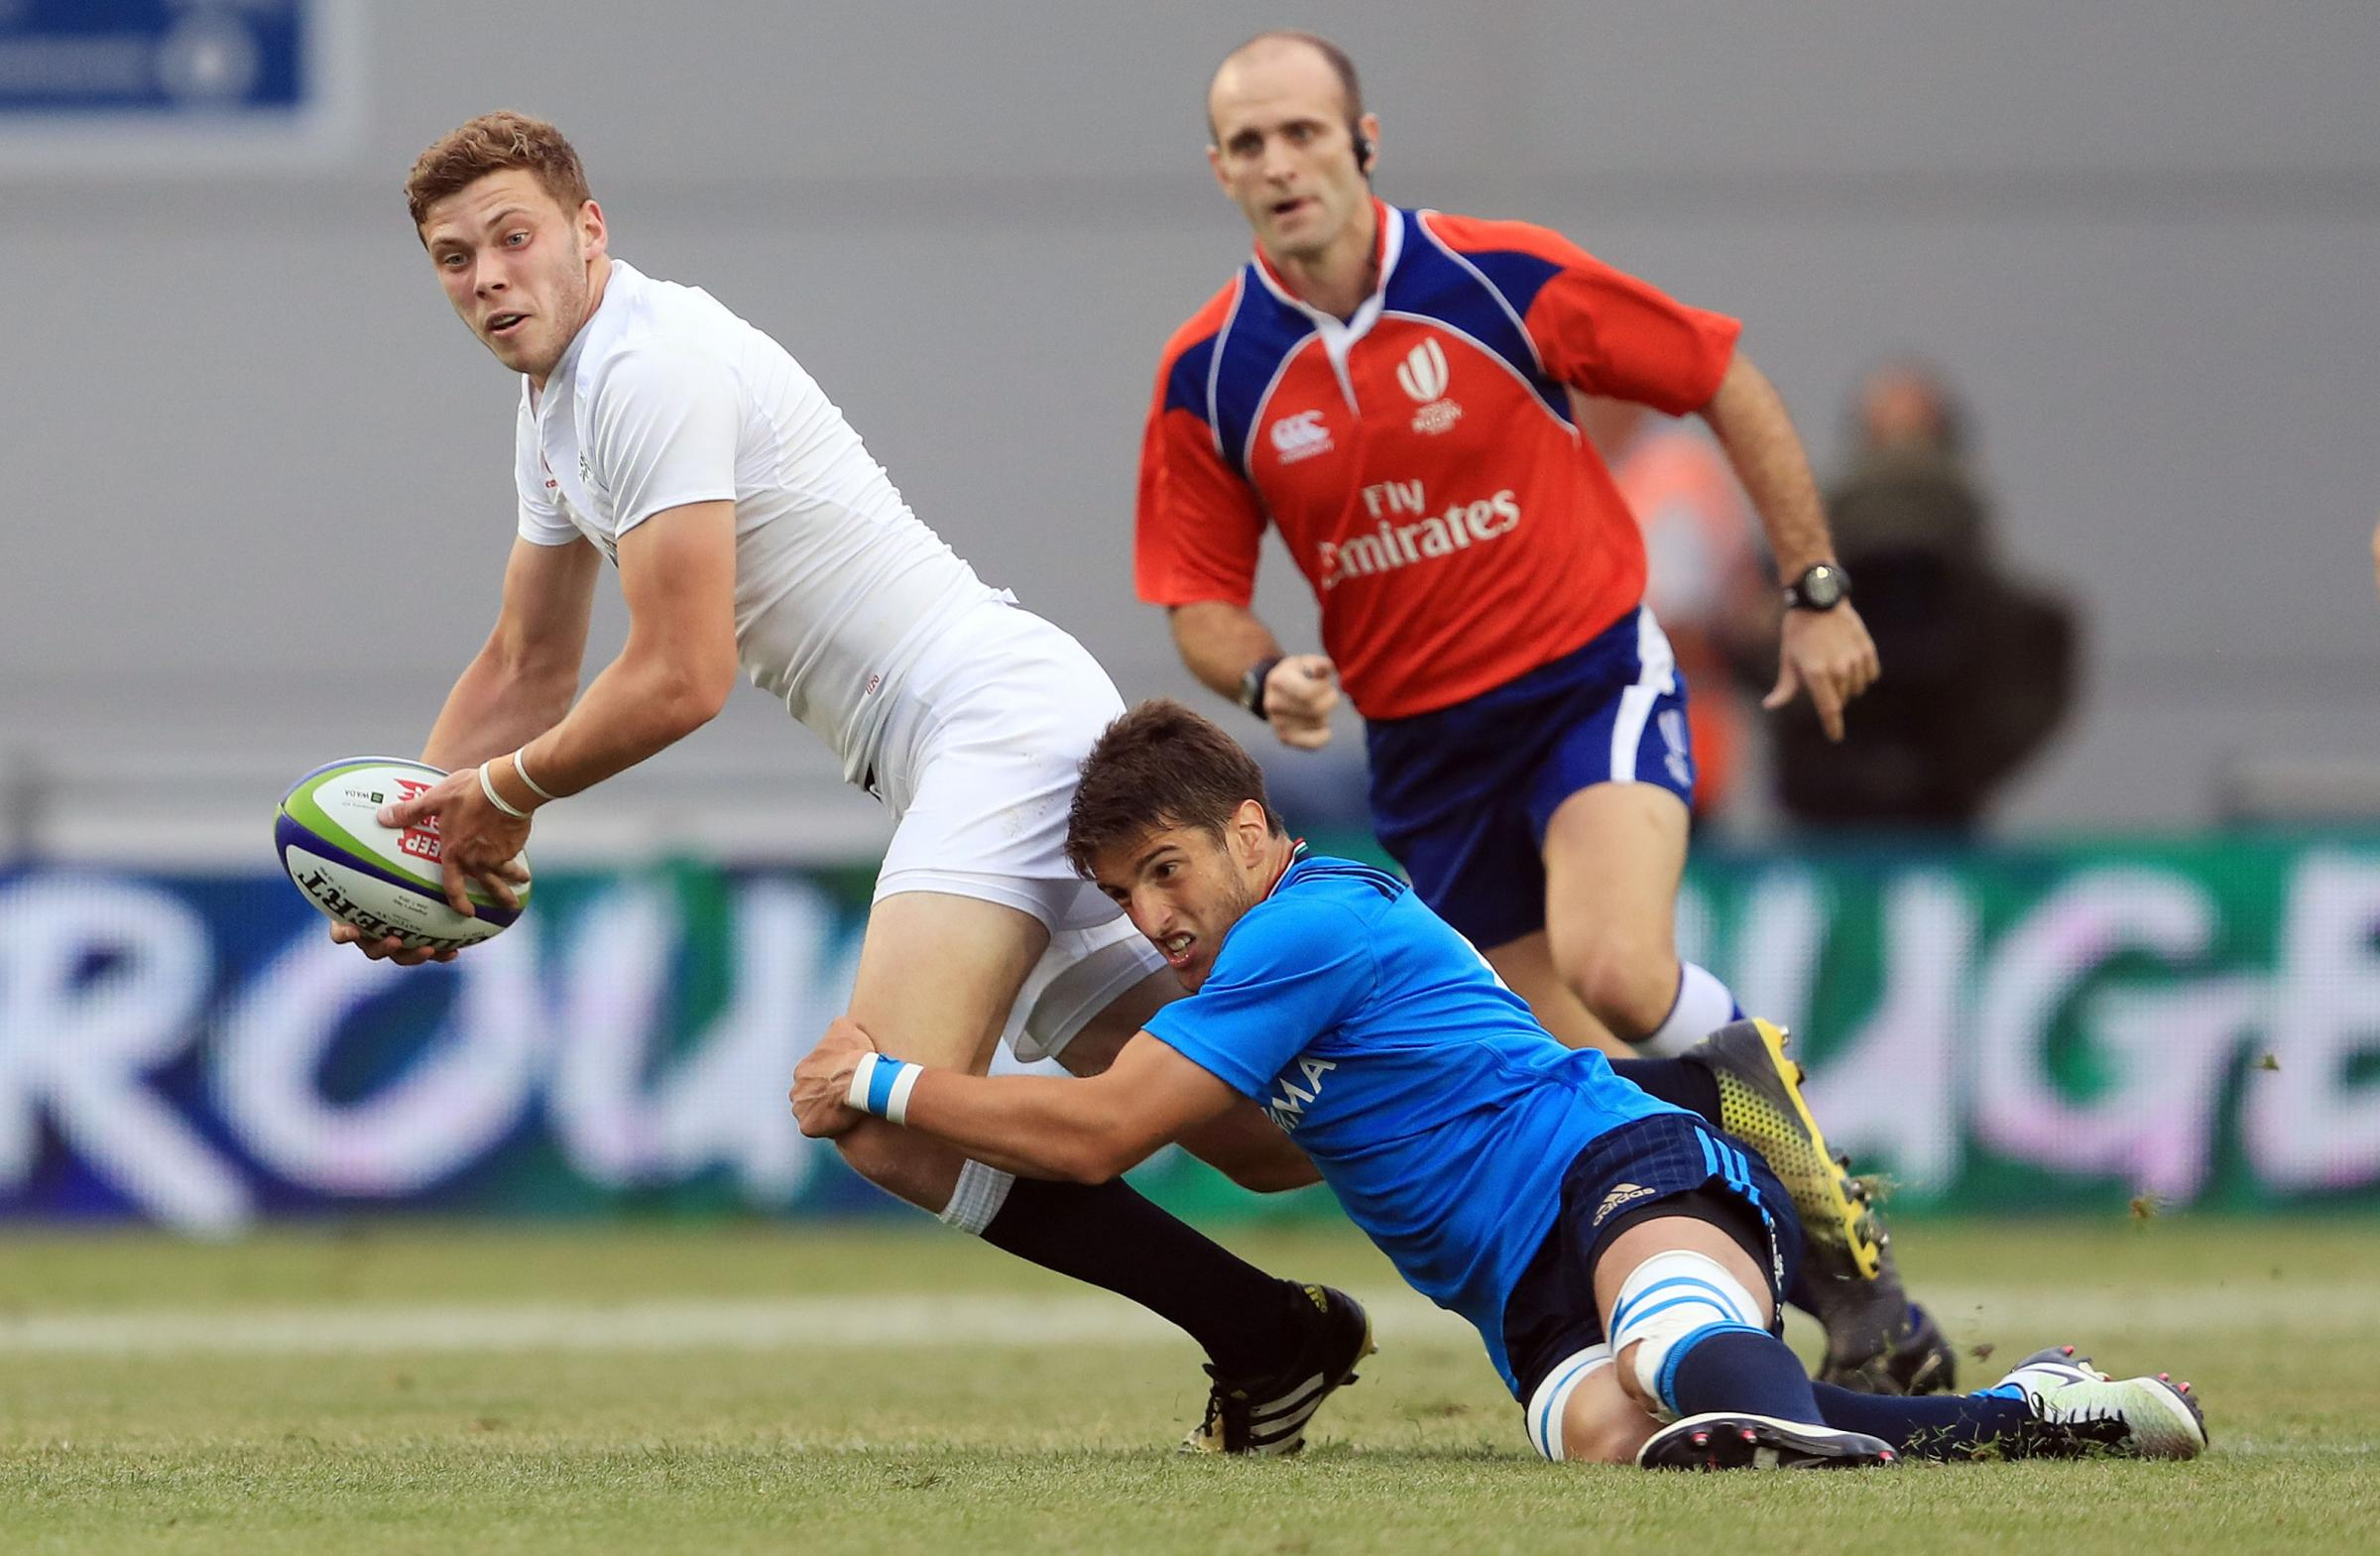 PEN TO PAPER: Theo Brophy Clews, pictured playing for England during the Under 20s World Cup in 2016, has signed a new deal with London Irish